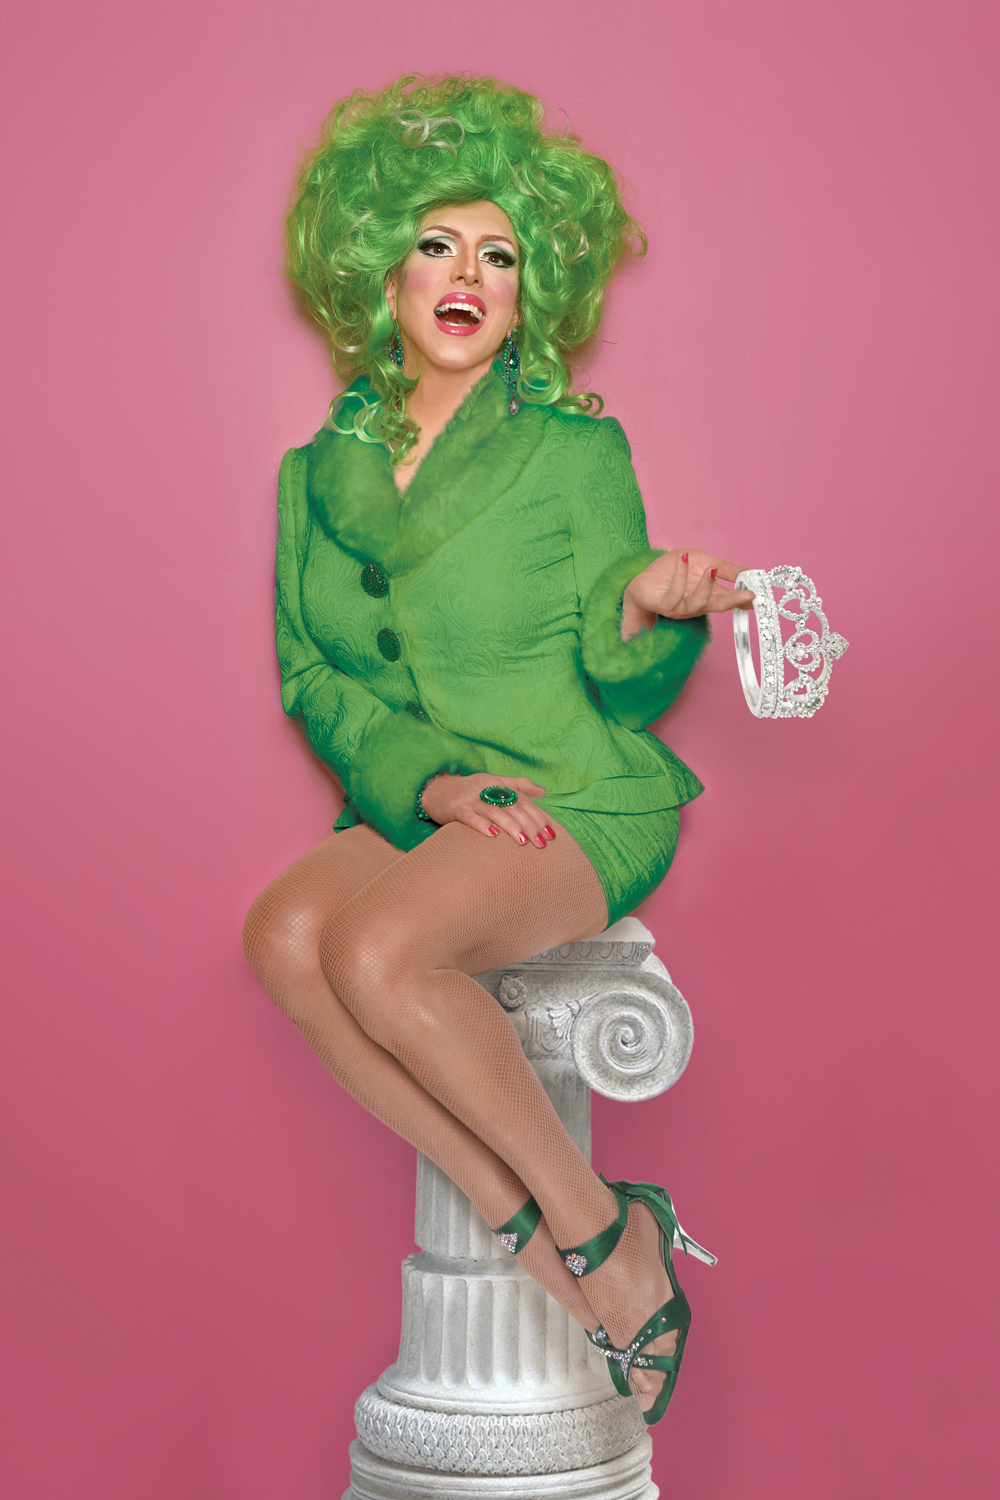 Hedda Lettuce, New York City's premiere drag queen personality.